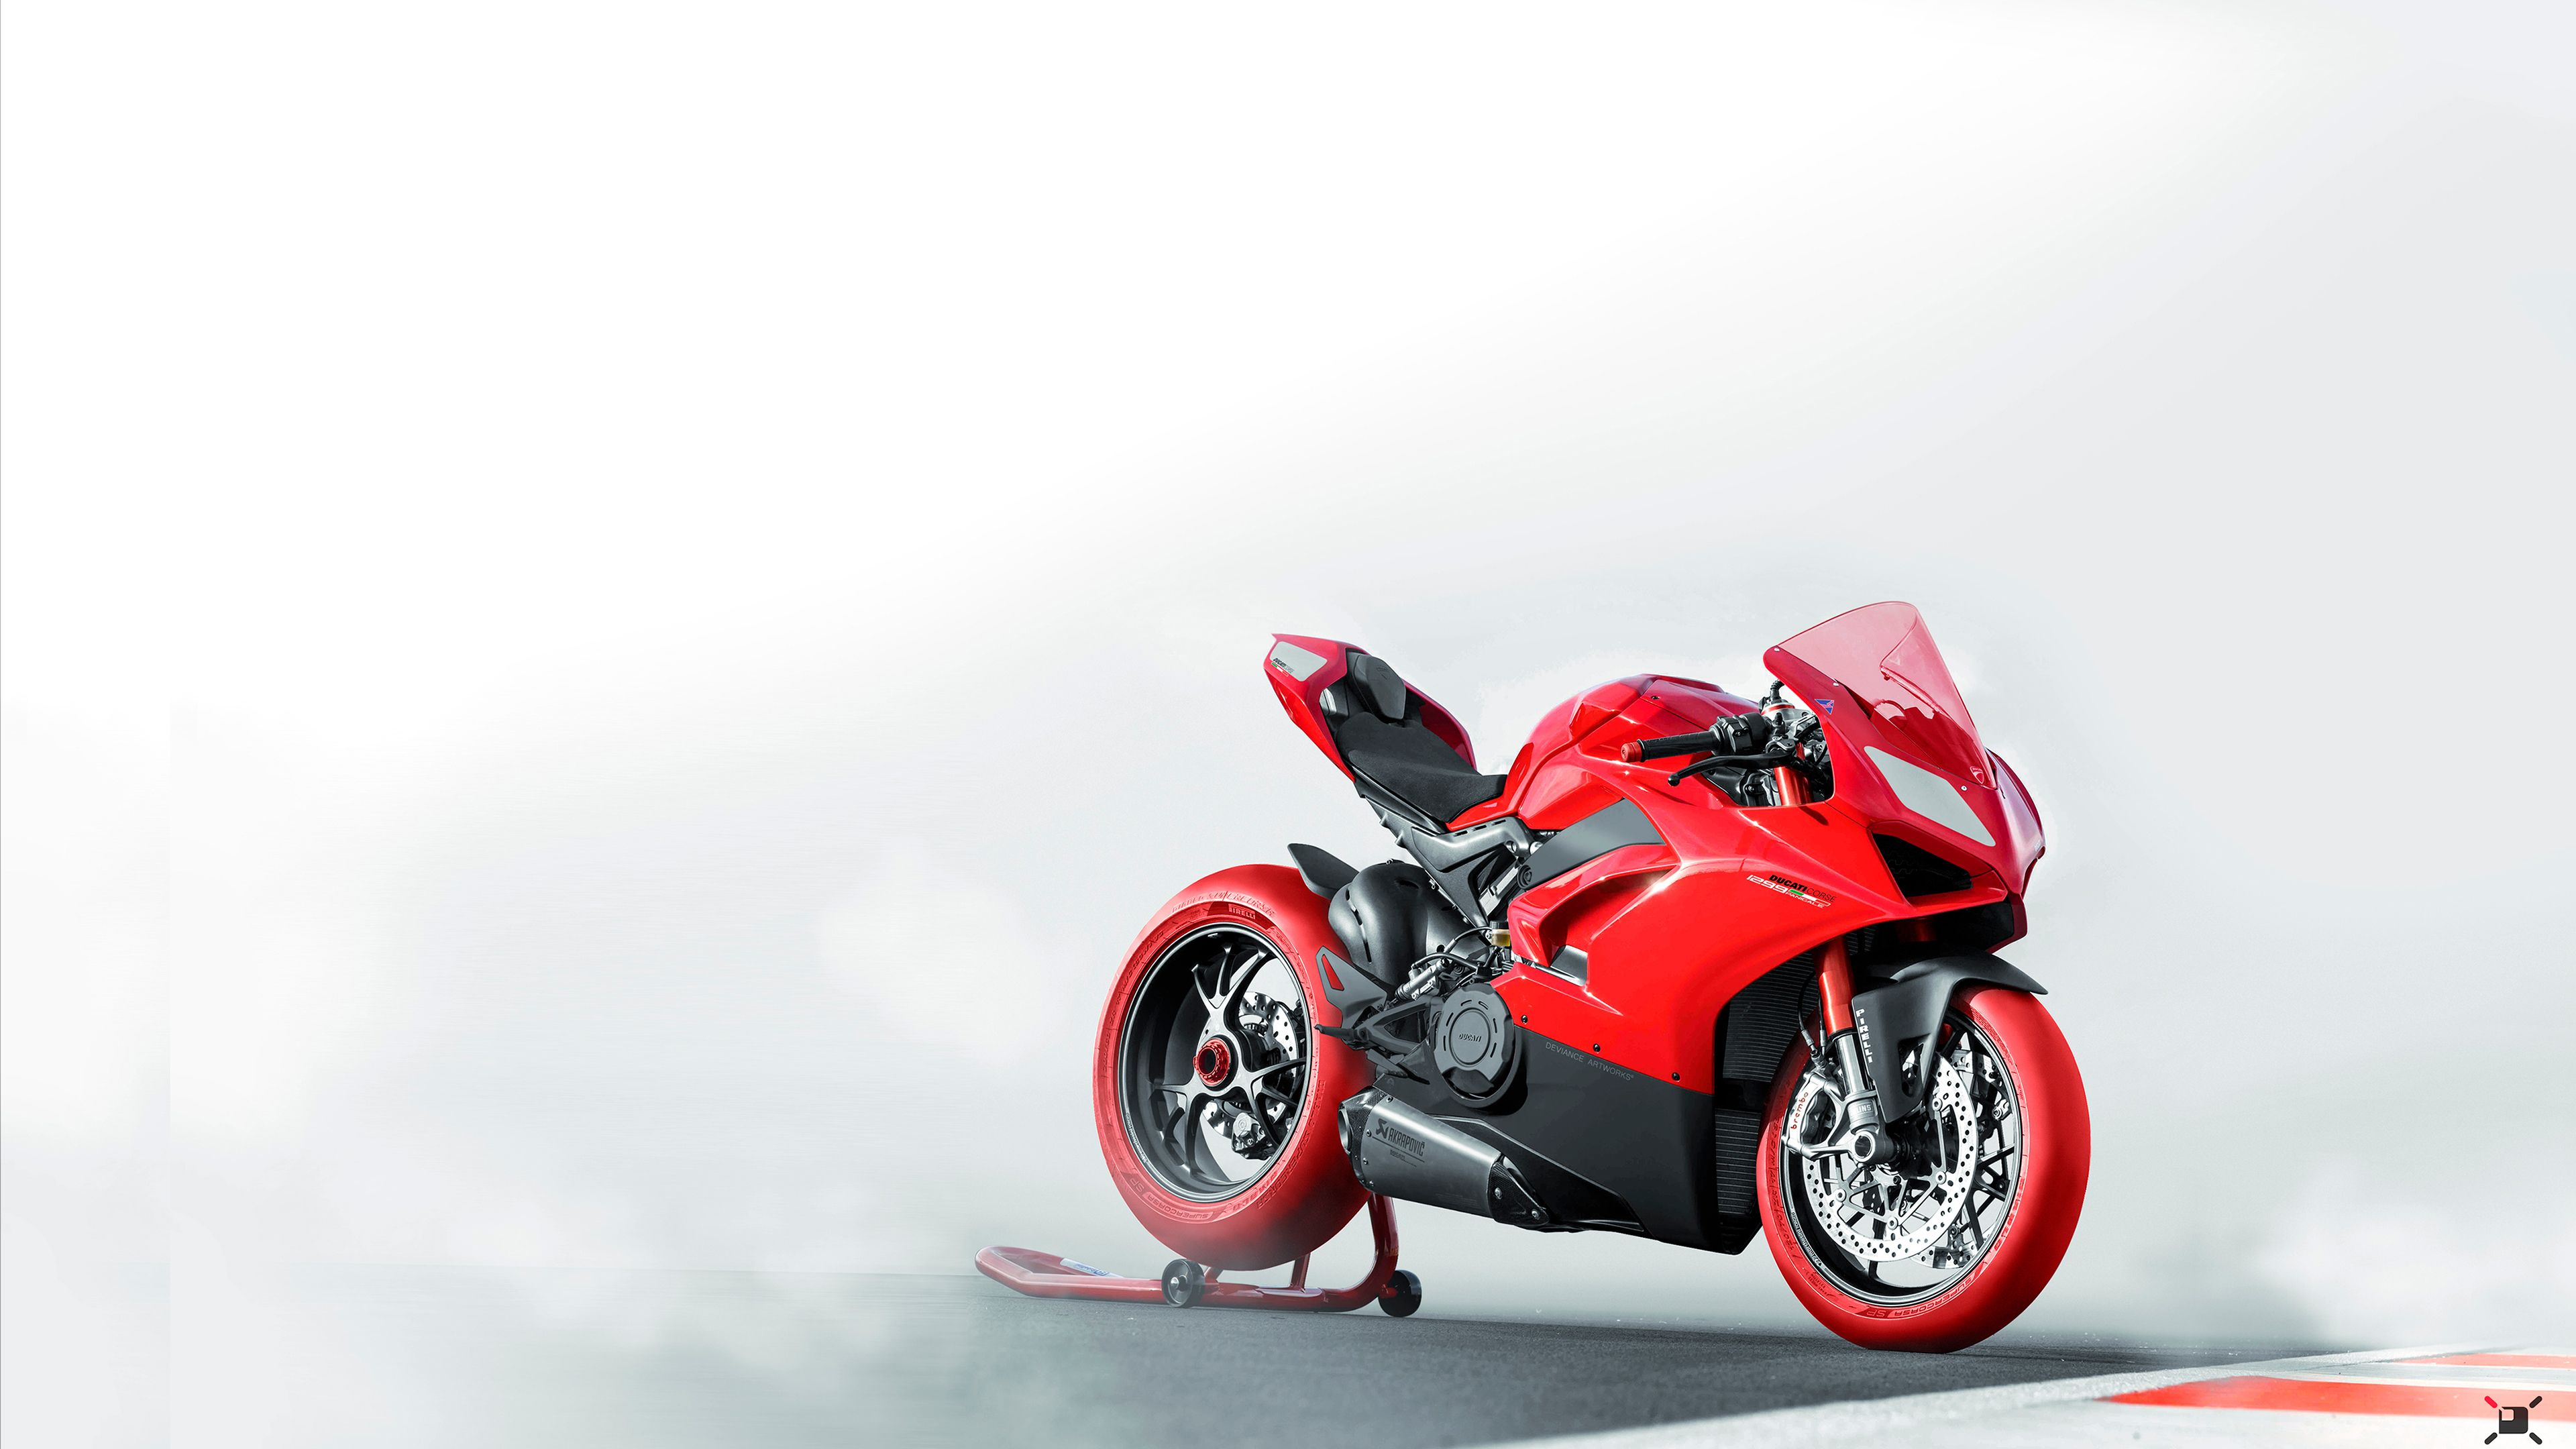 Ducati 1299 Panigale 4k Hd Wallpapers Ducati Wallpapers Ducati 1299 Wallpapers Bikes Wallpapers Behance Wallpap Ducati 1299 Panigale Ducati Ducati Panigale